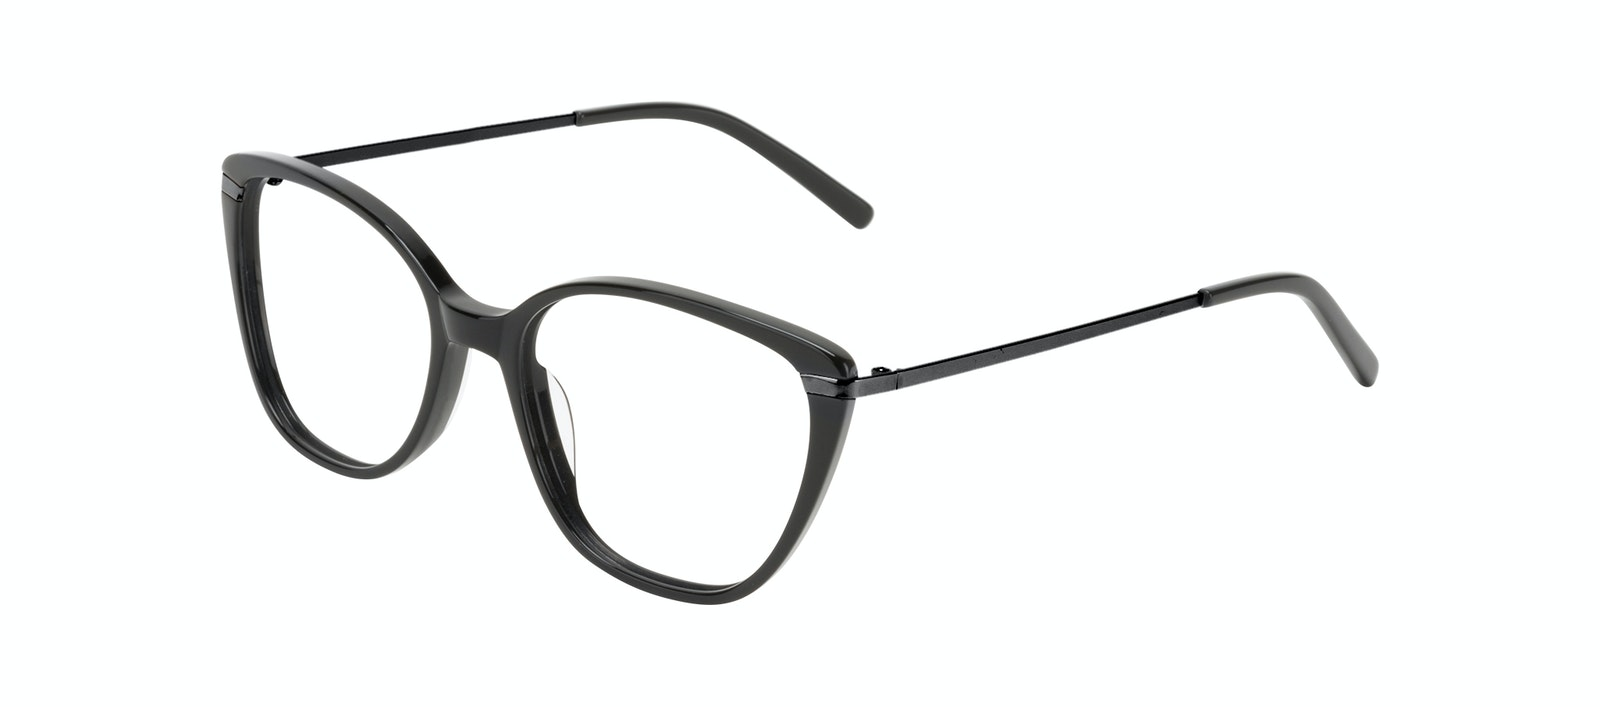 Affordable Fashion Glasses Rectangle Square Eyeglasses Women Illusion Onyx Tilt